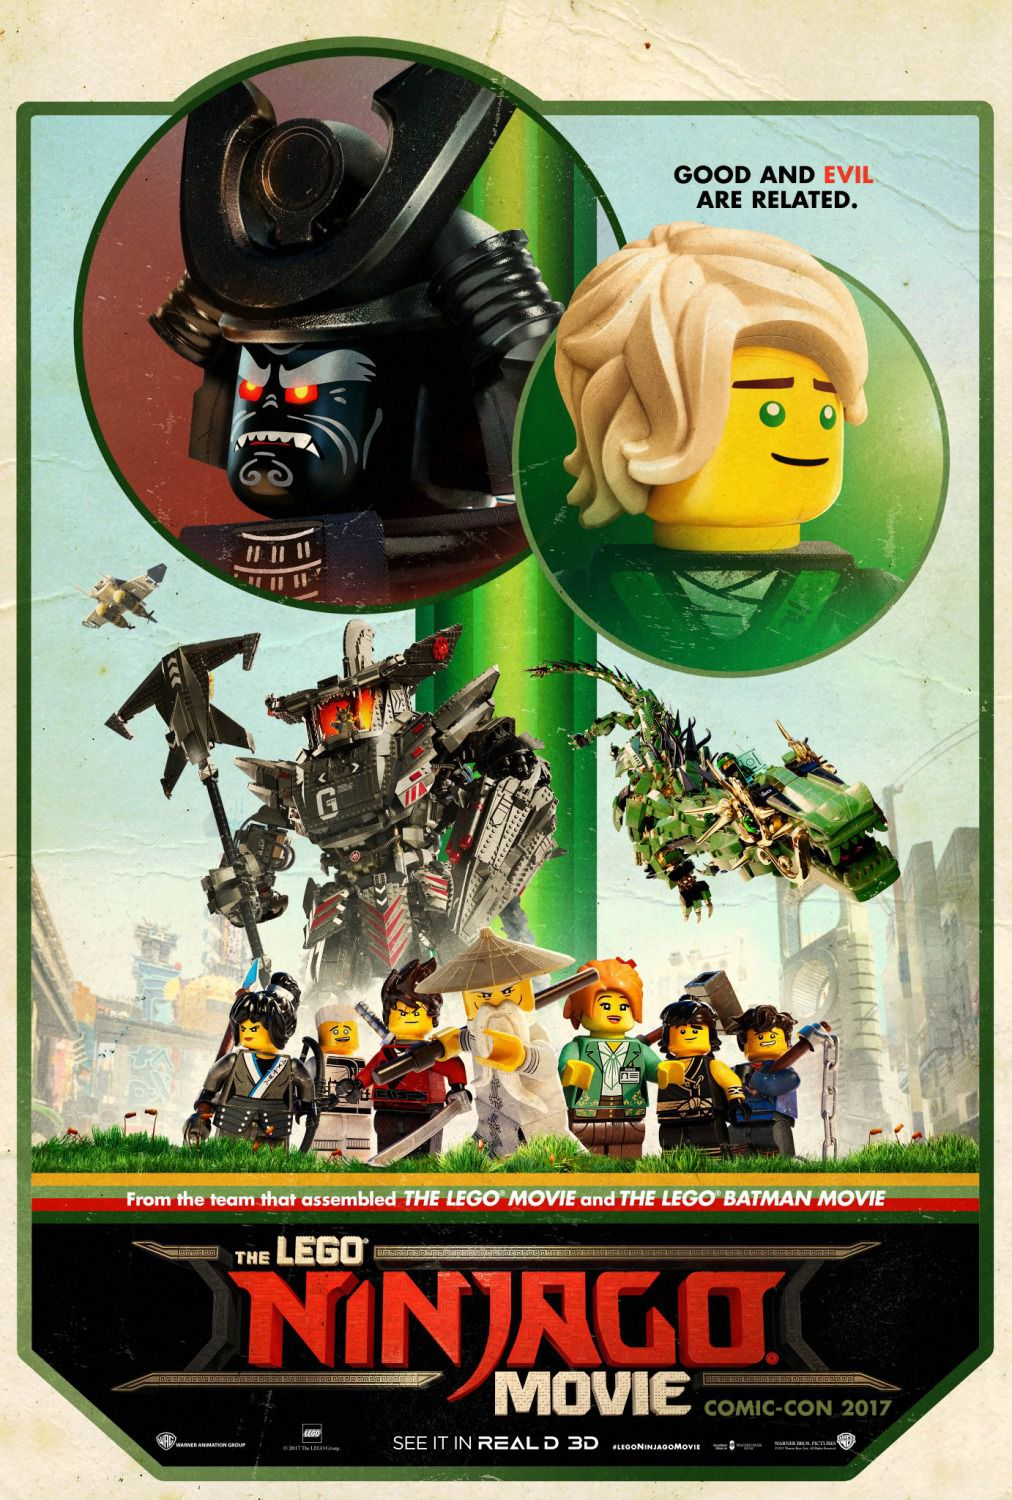 The Lego Ninjago Movie - poster